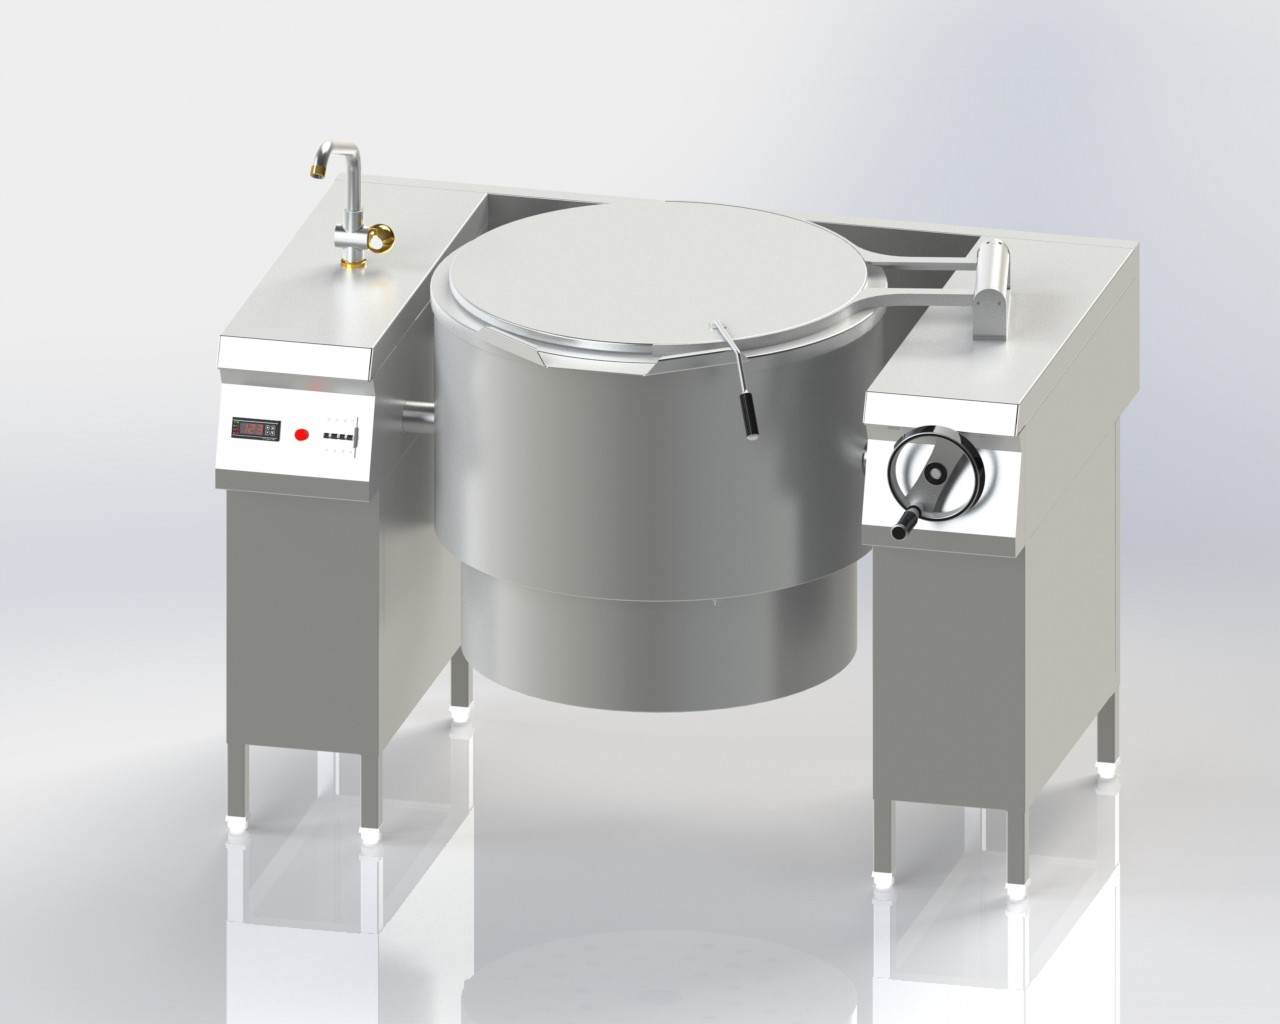 Tilting Boiling Pan (Electrical)